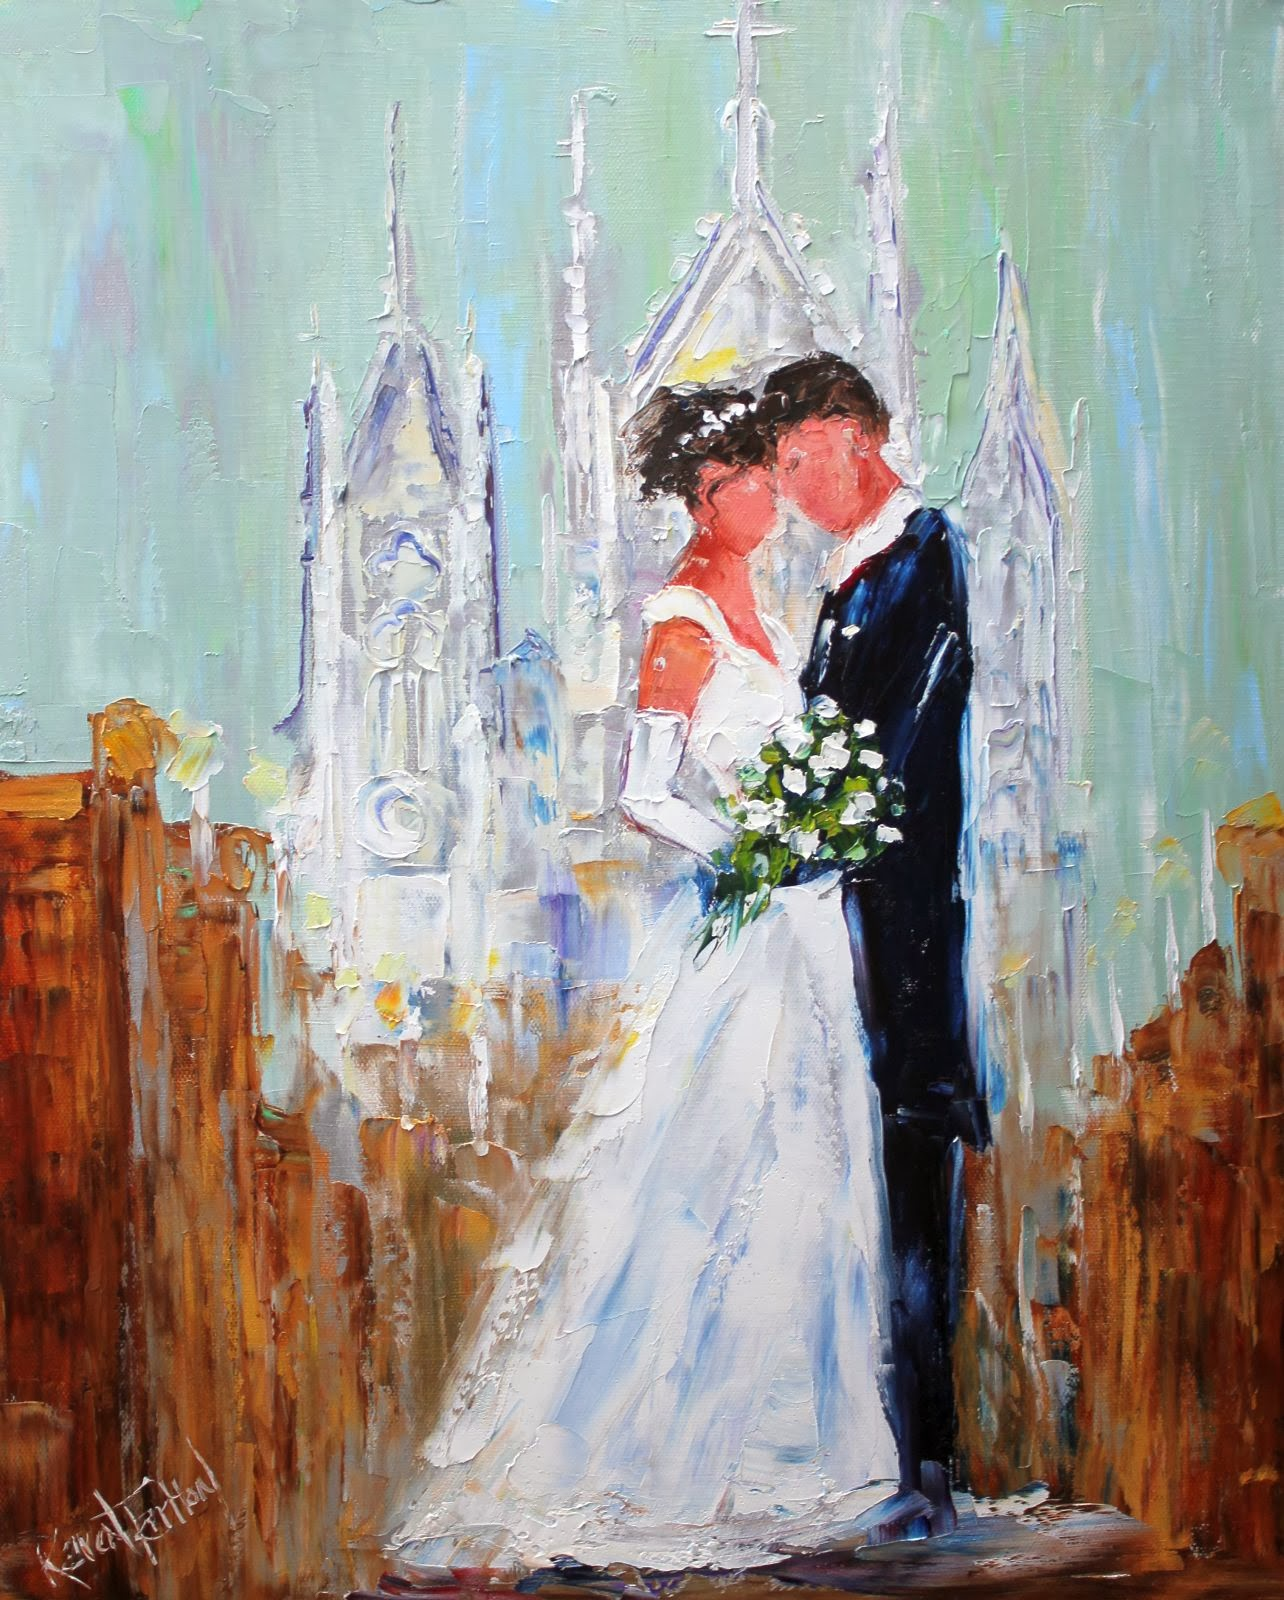 karen tarlton original oil painting wedding custom